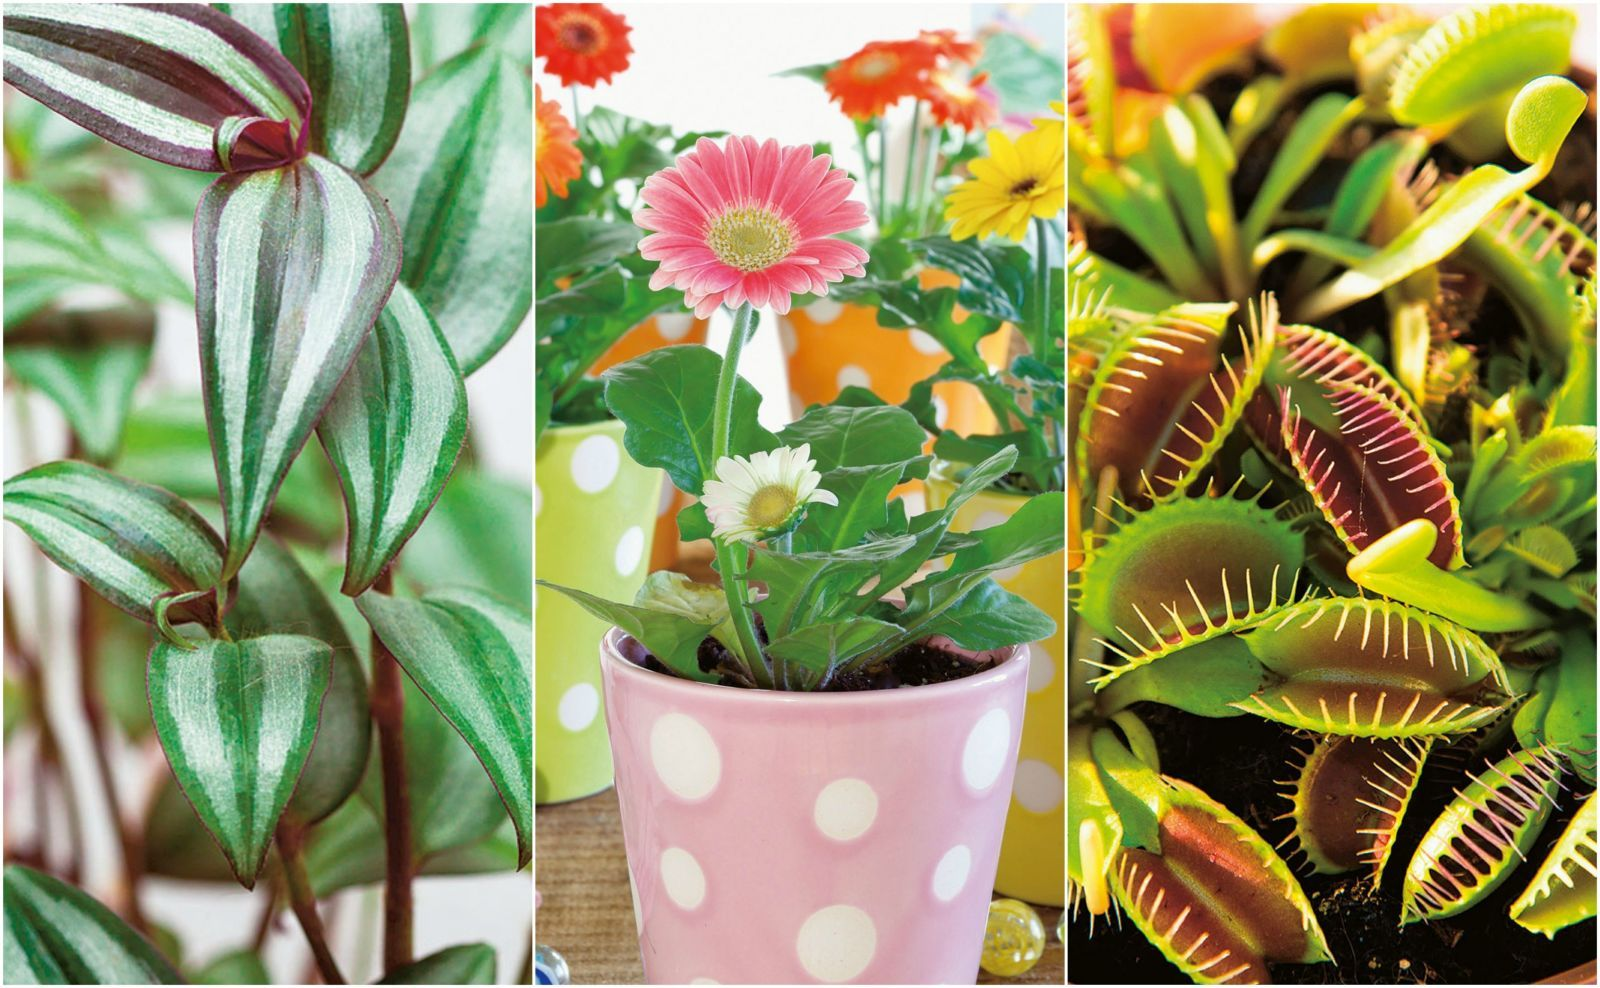 12 of the best plants for children's bedrooms with images